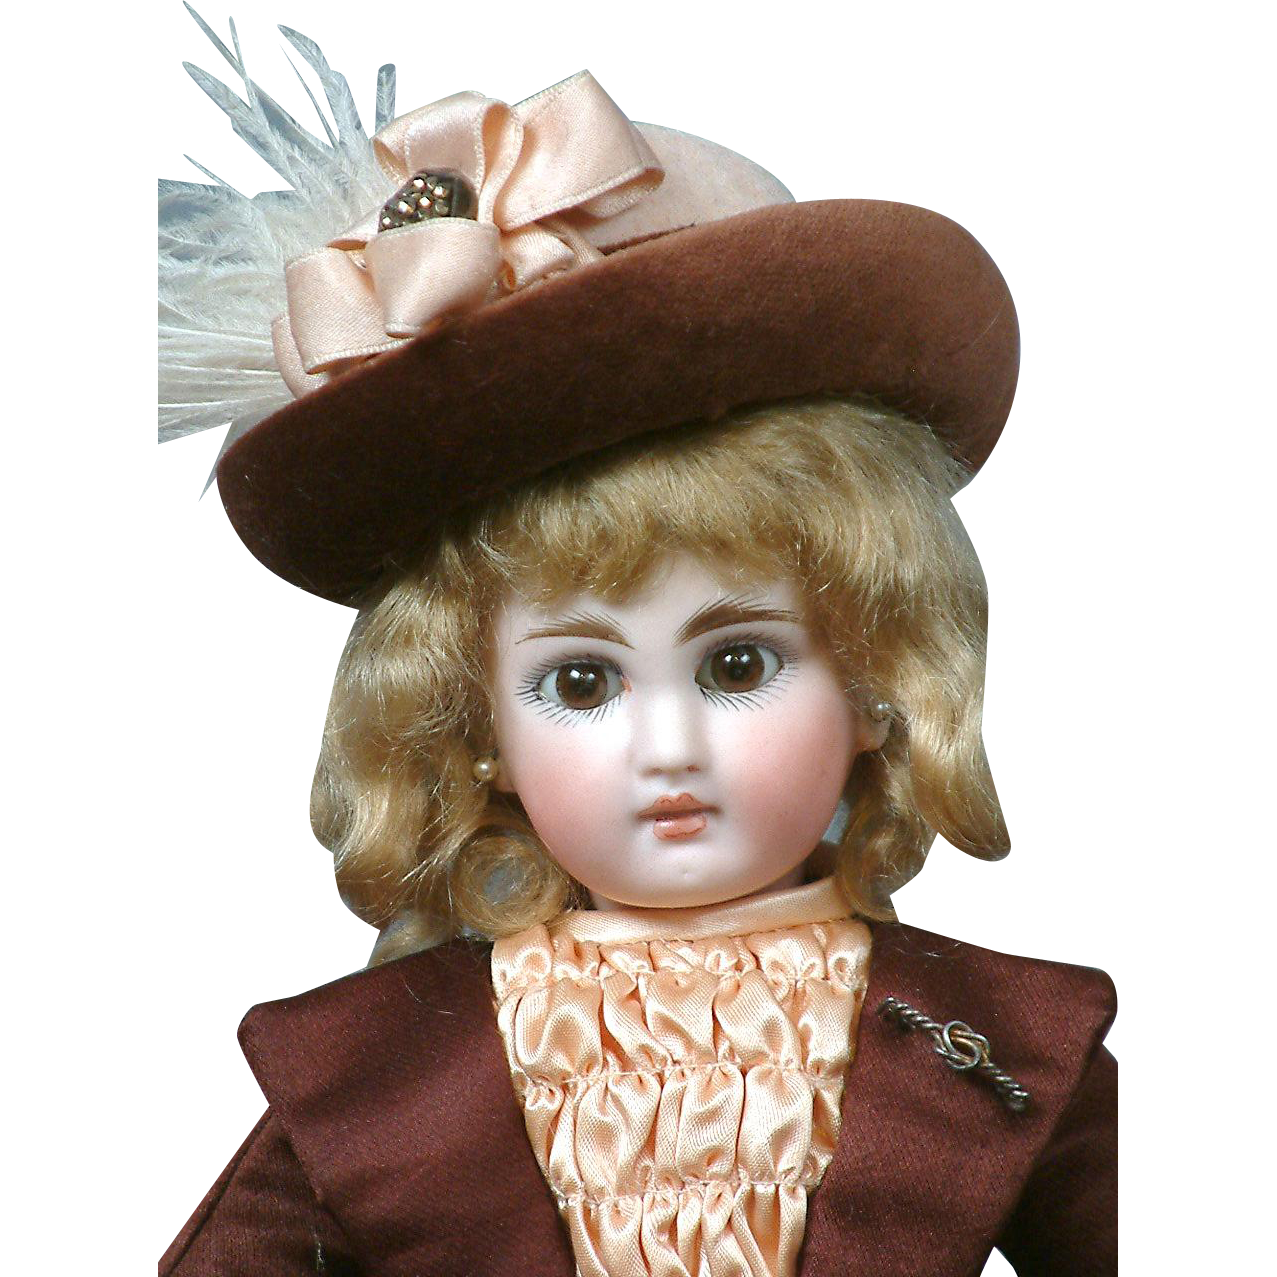 "Petite Darling 11"" German Belton-Type to Emulate The French Jumeau Bebe in Cute Bebe Costume"